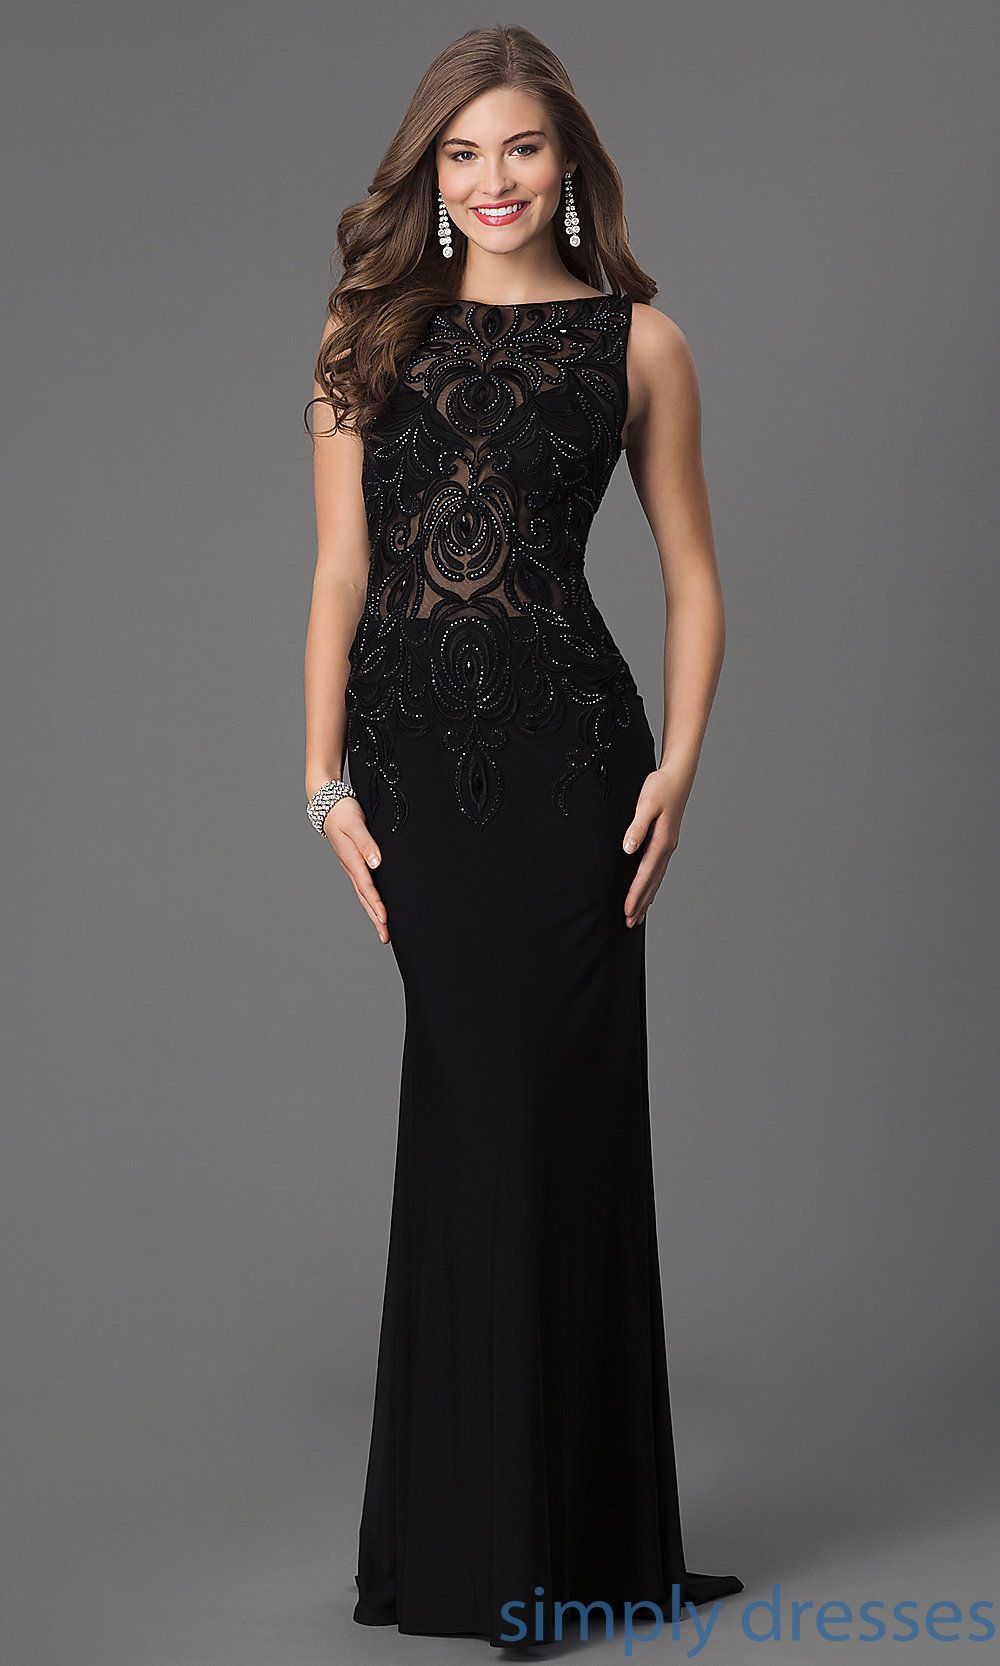 Sheerbodice black evening gown dress formal dress casual and